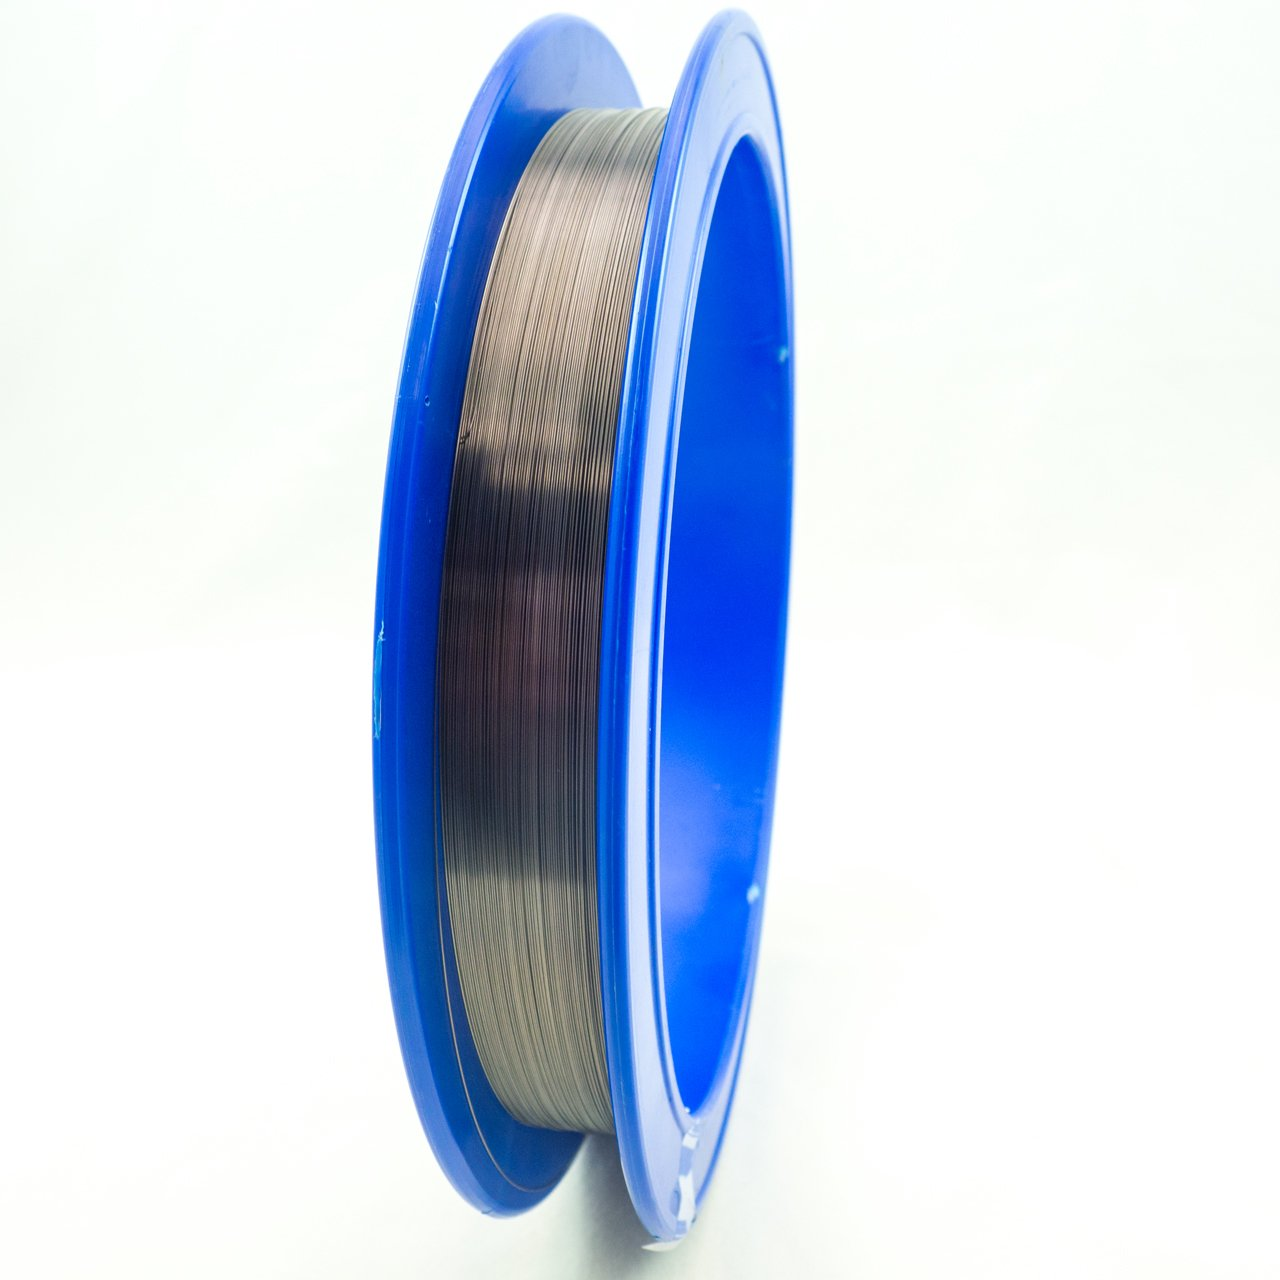 0.0200'' (0.508 mm) Diameter 99.95% Tungsten Fine Wire, 20 feet, cleaned and straightened